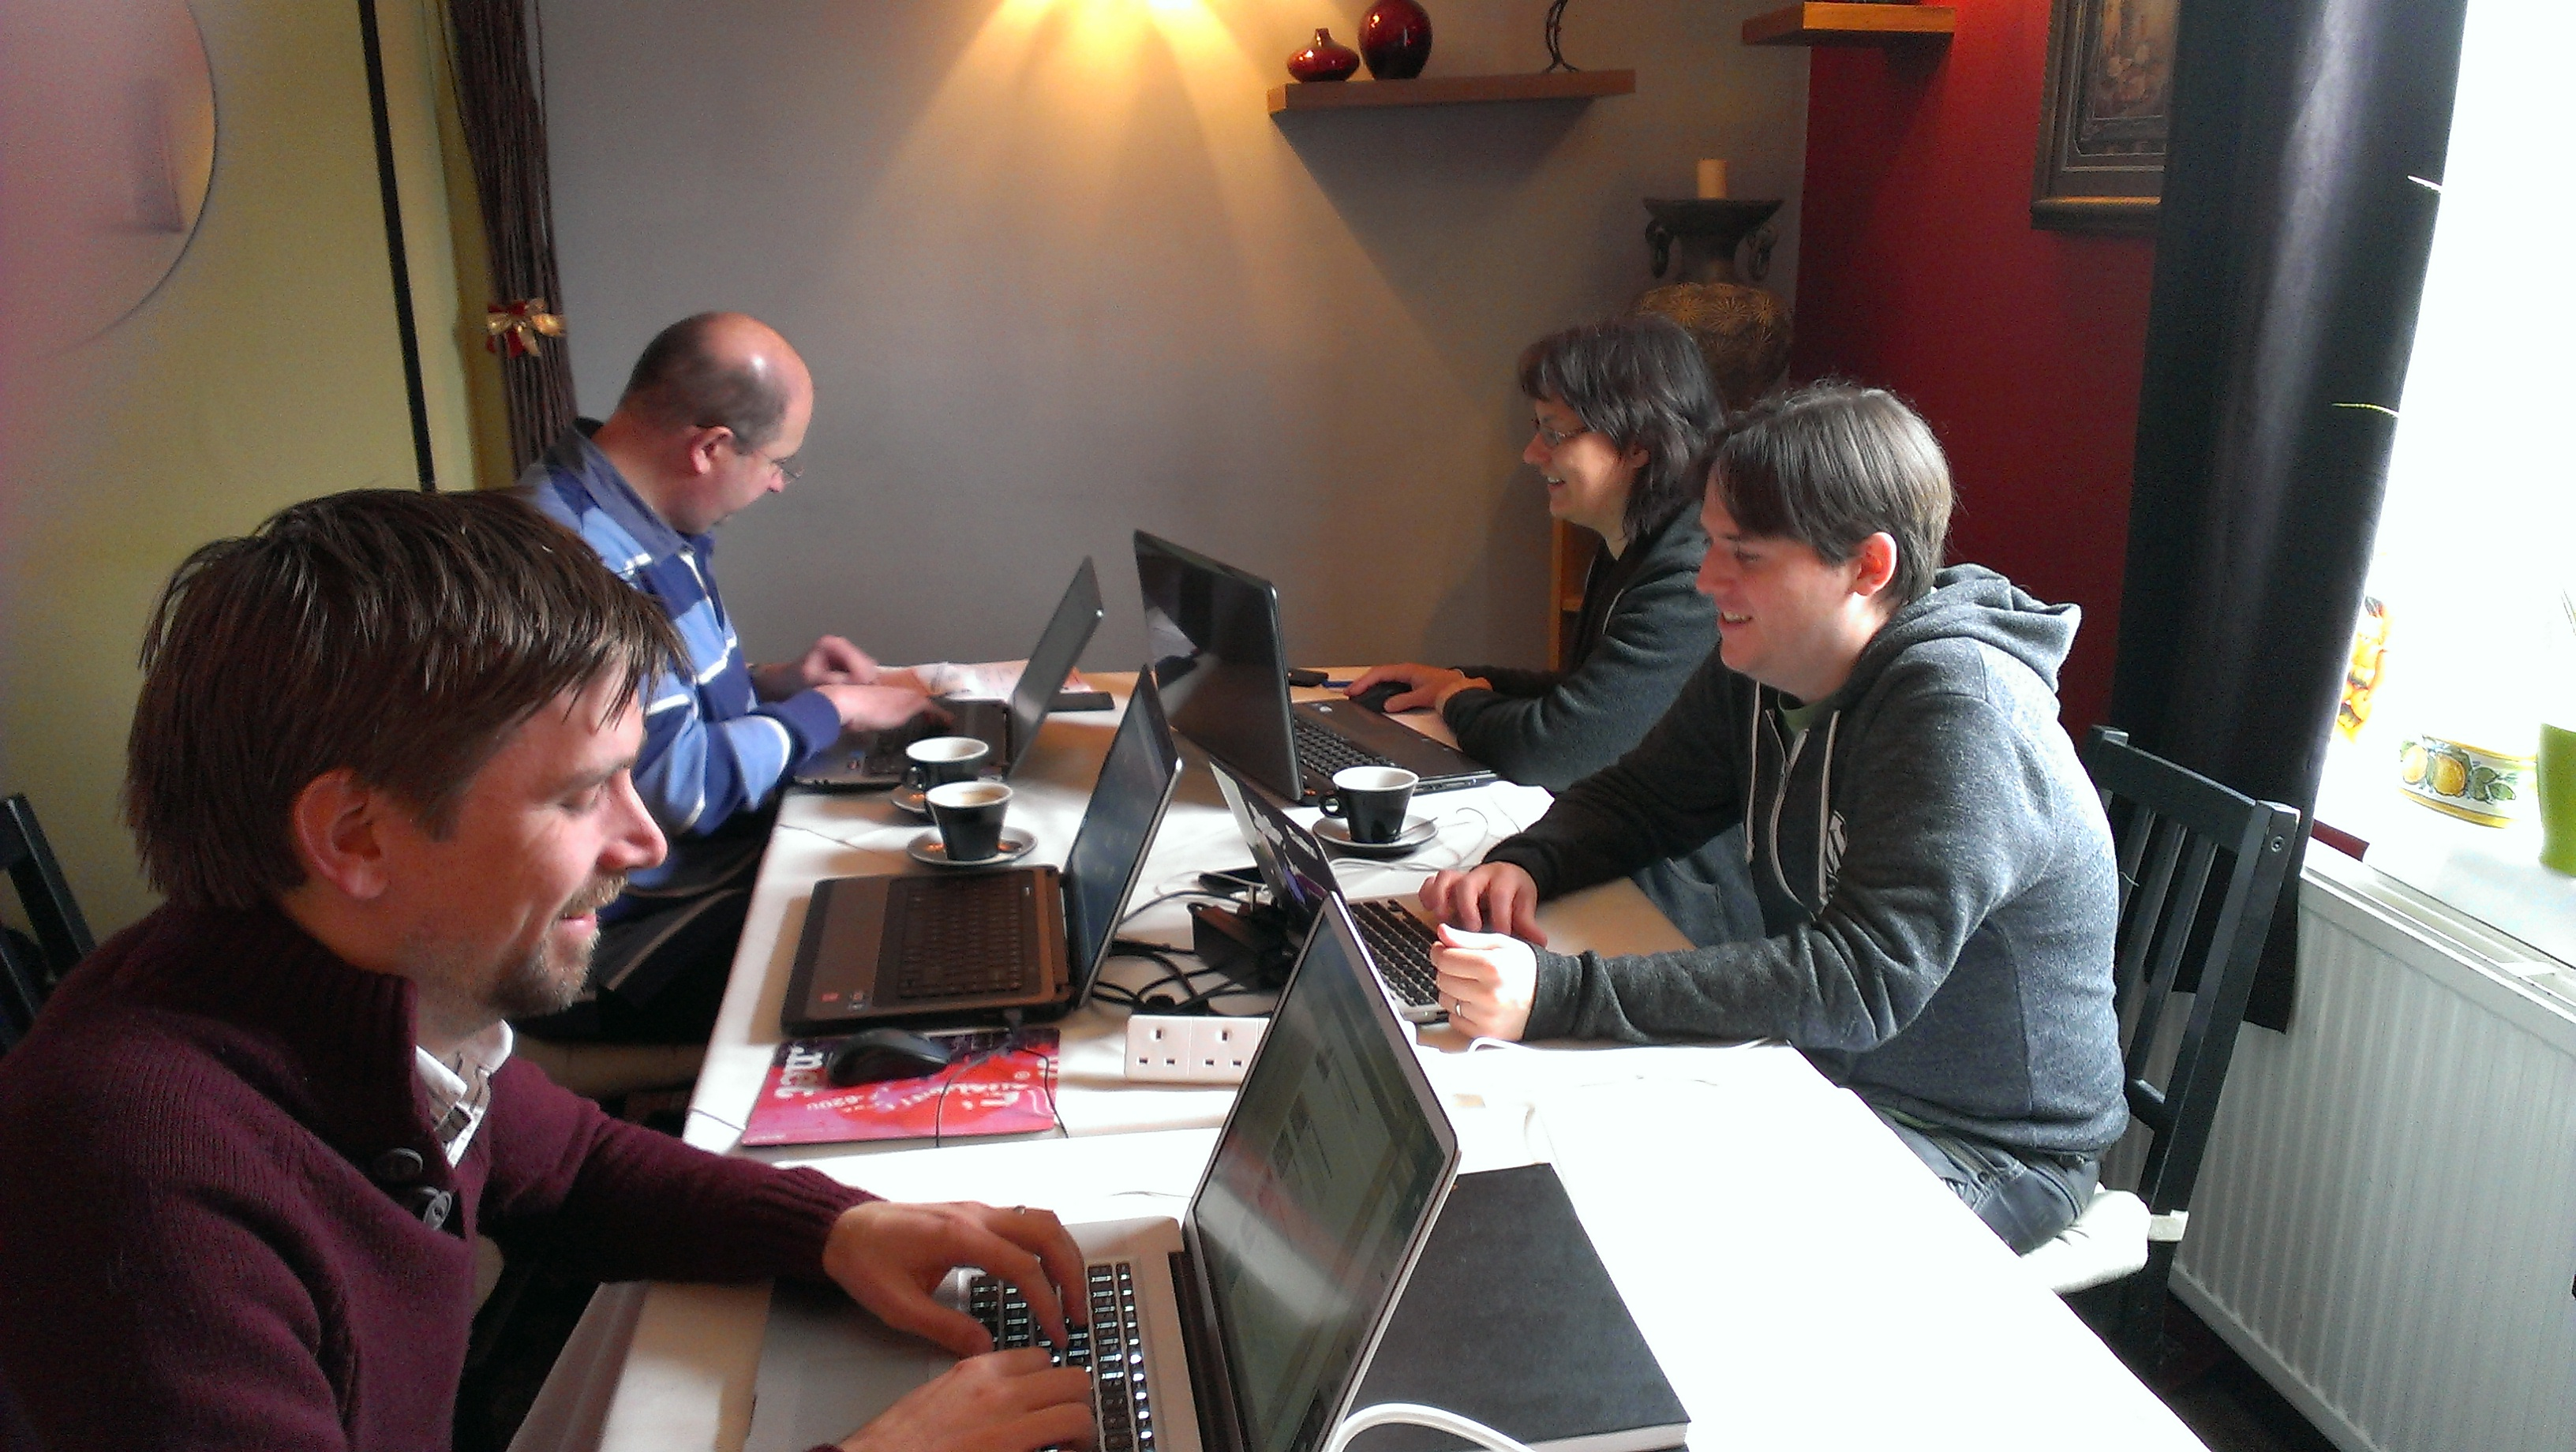 Working at a Horsham Coworking day